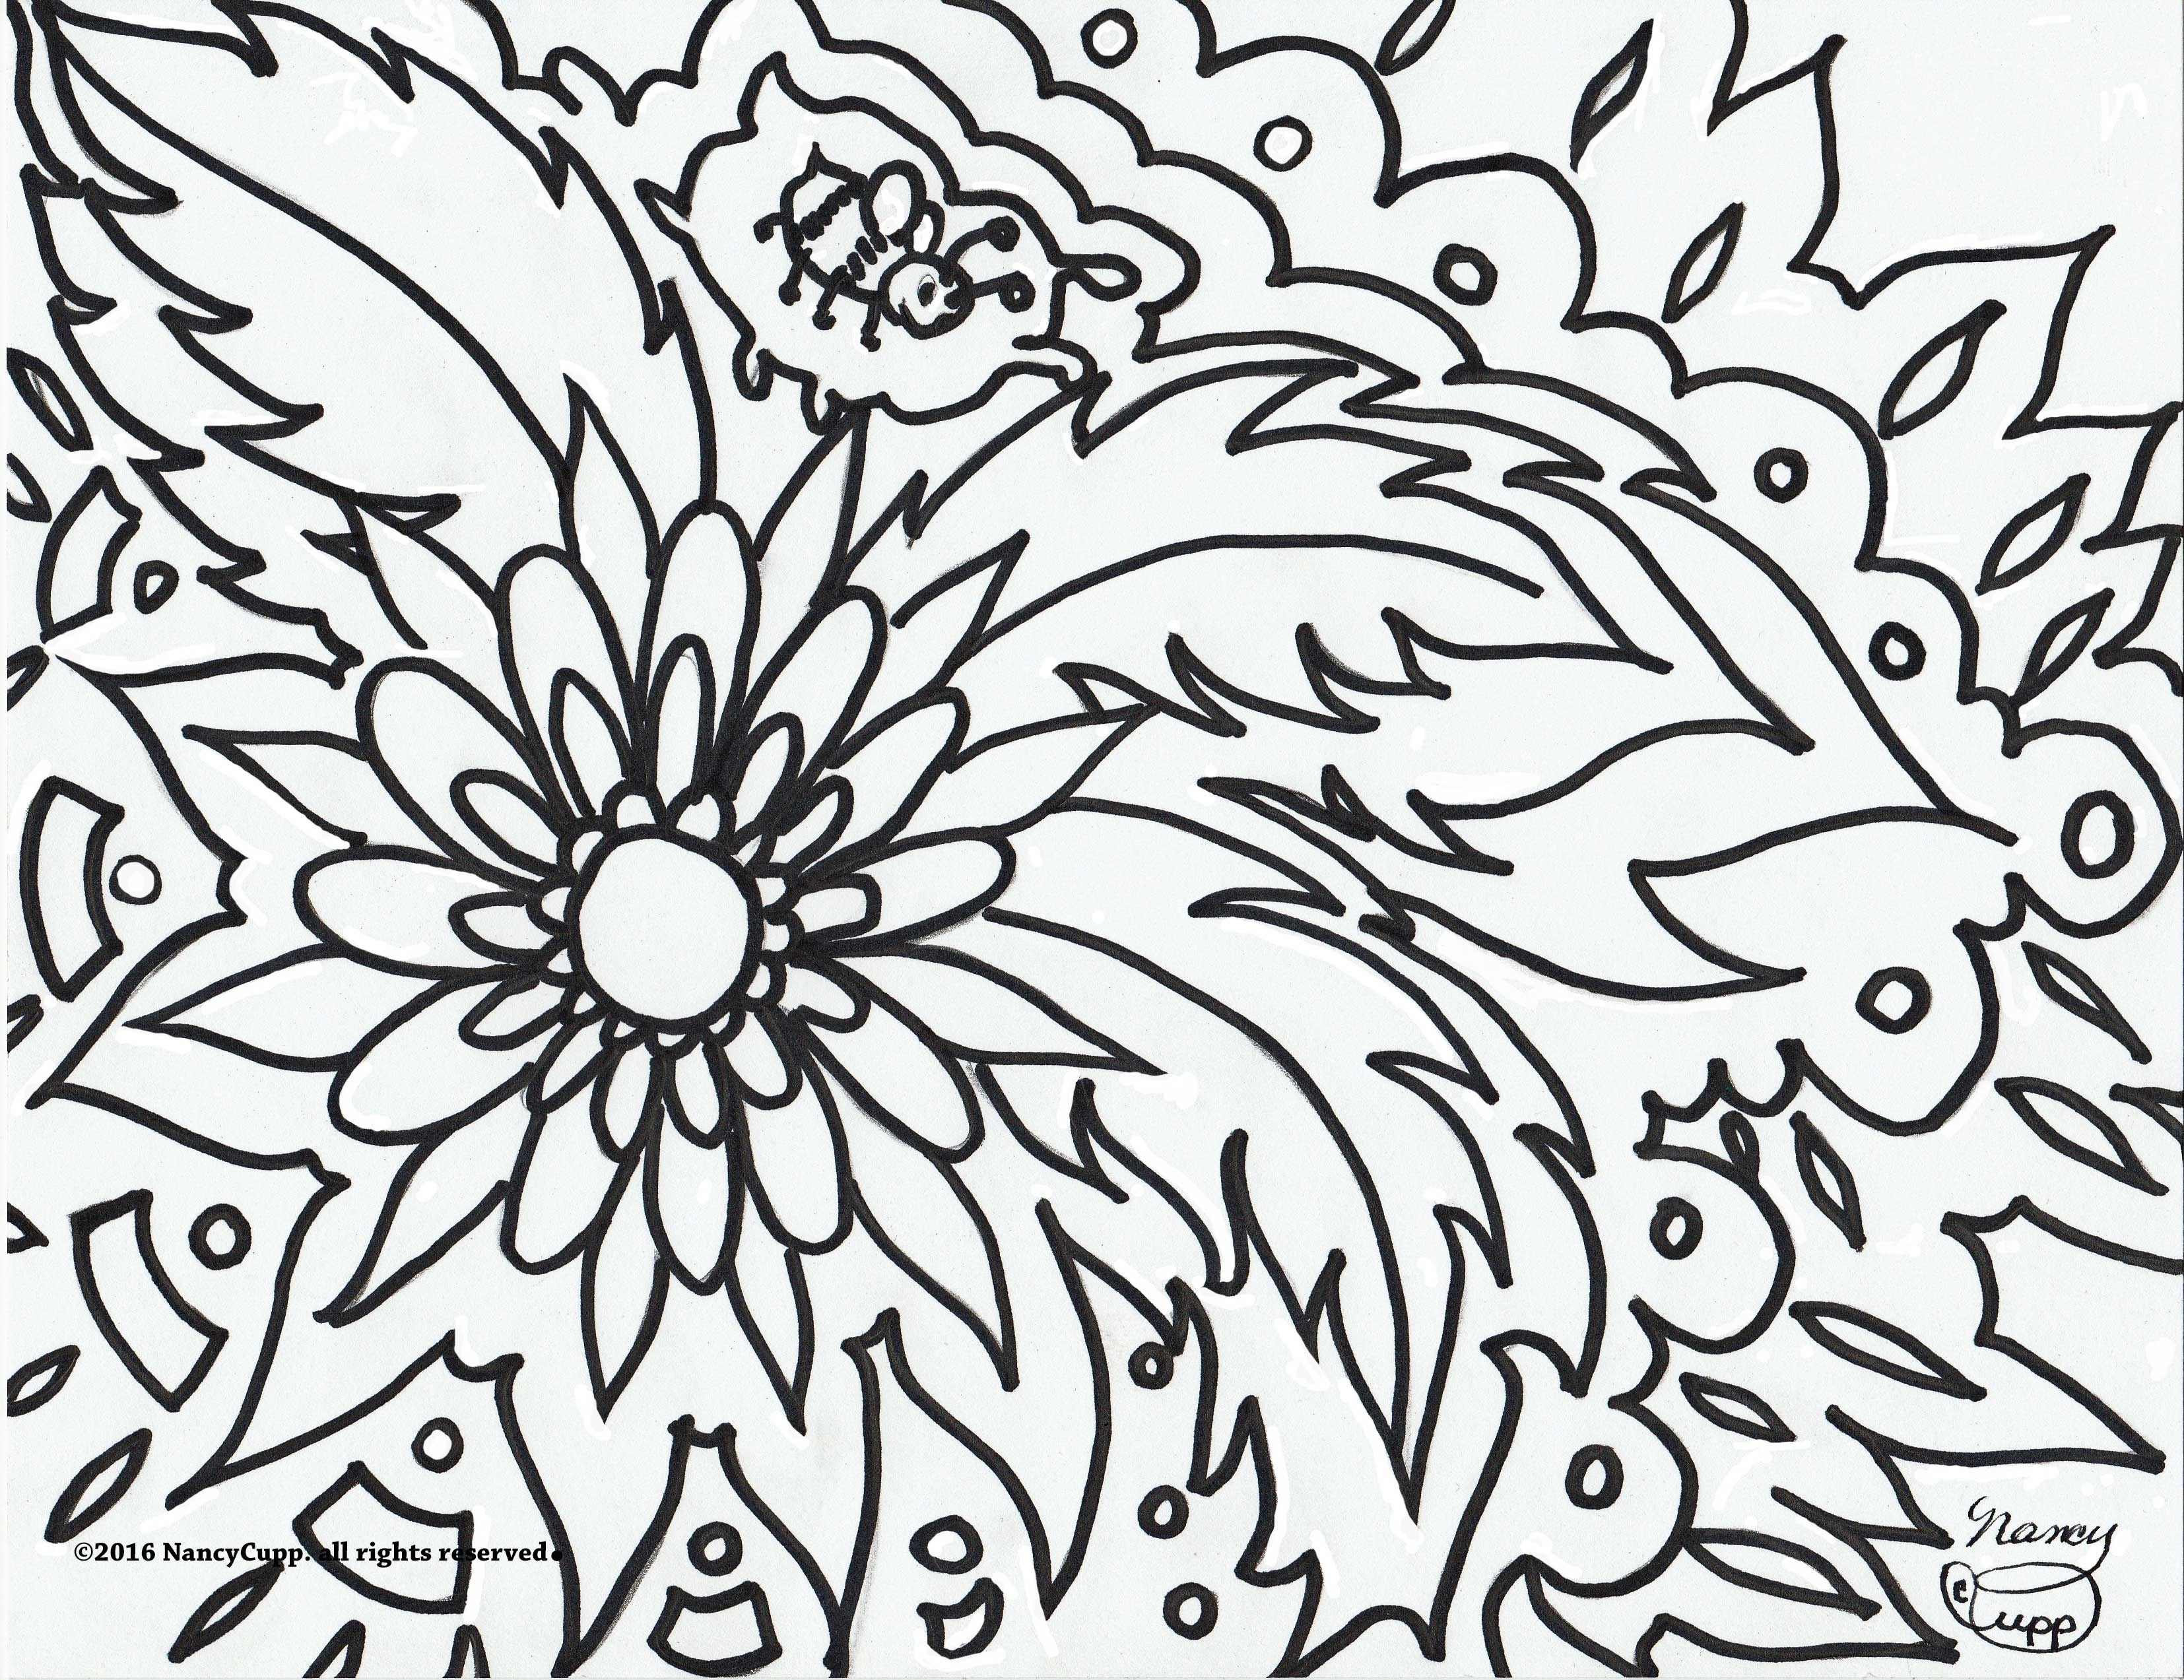 turn pictures into coloring pages app - colorscape turn your photos into coloring pages on the app